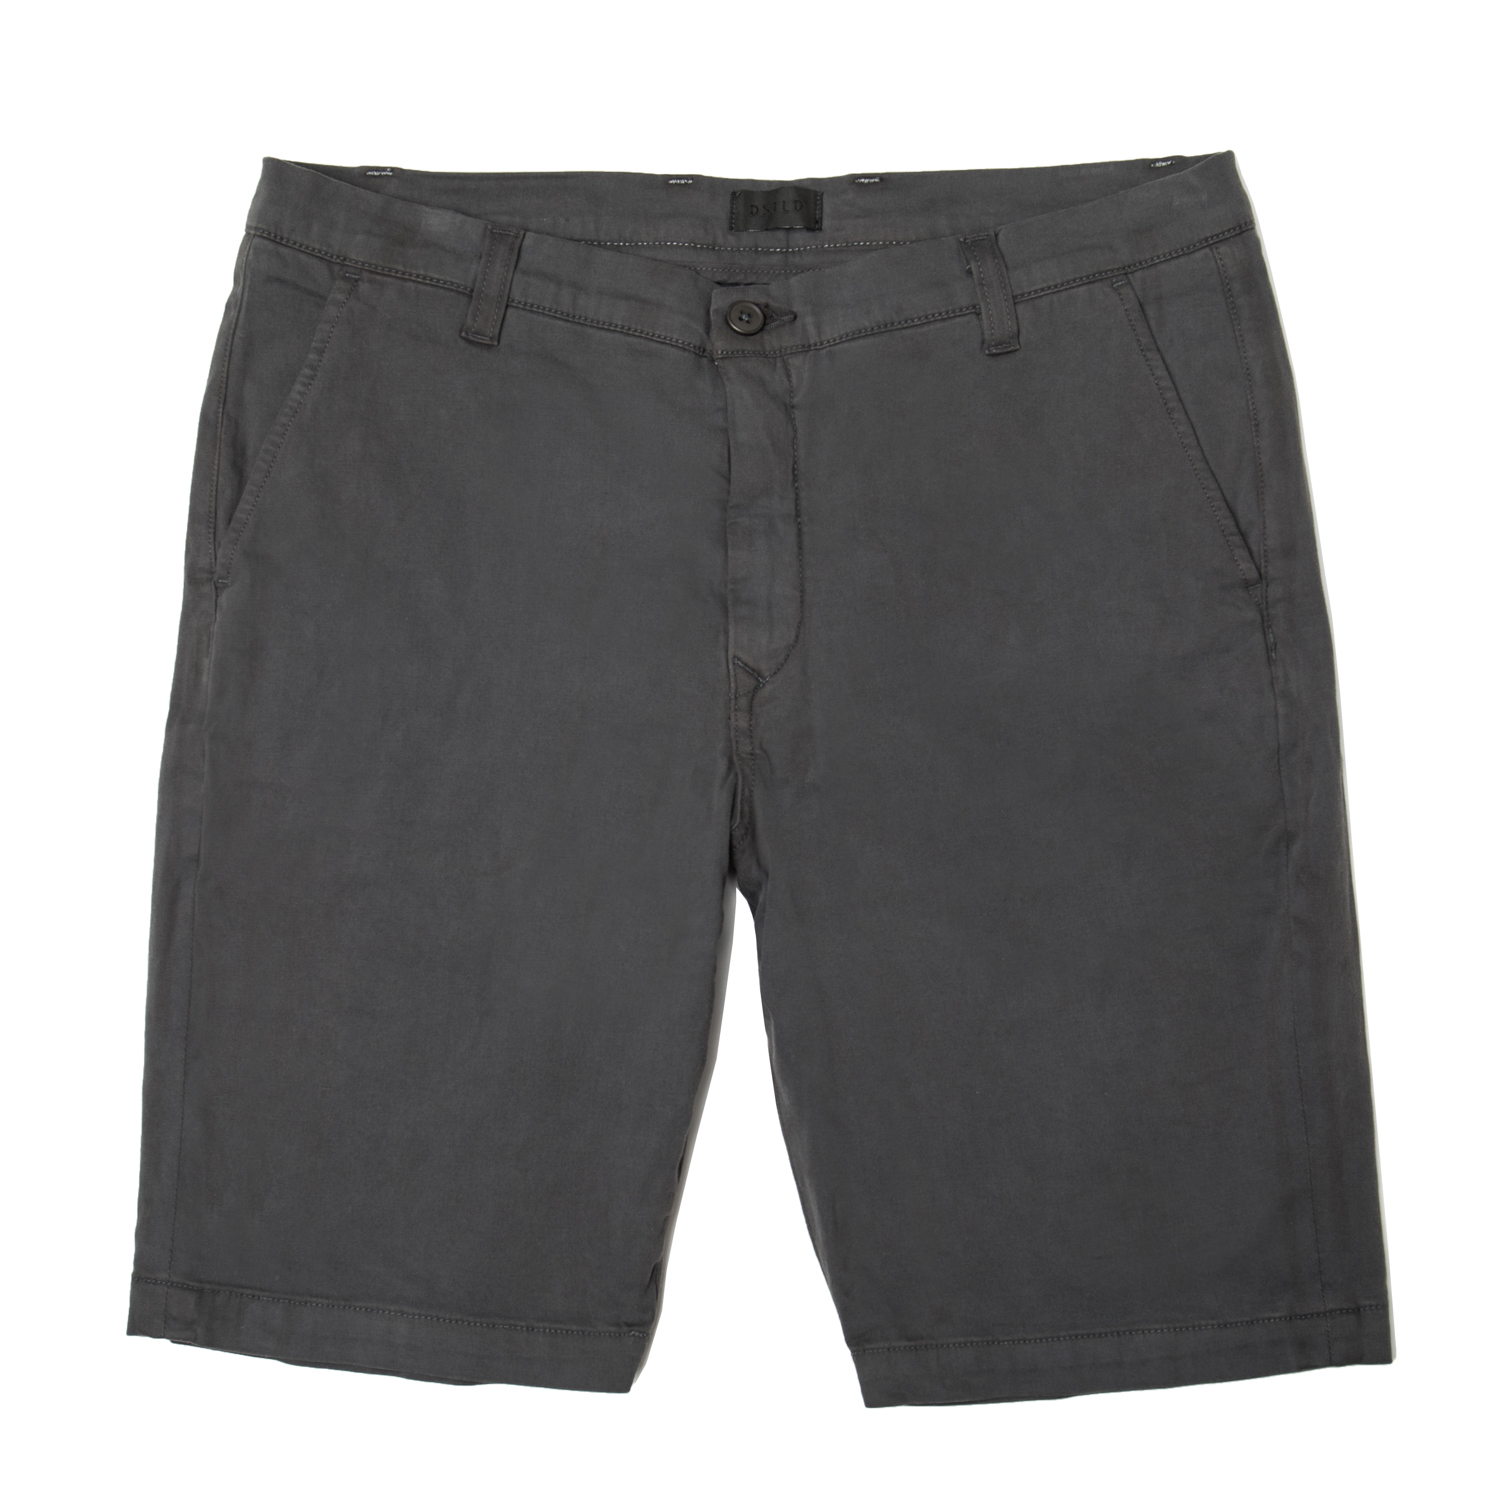 Mens Slim Chino Shorts In Charcoal $65 | DSTLD